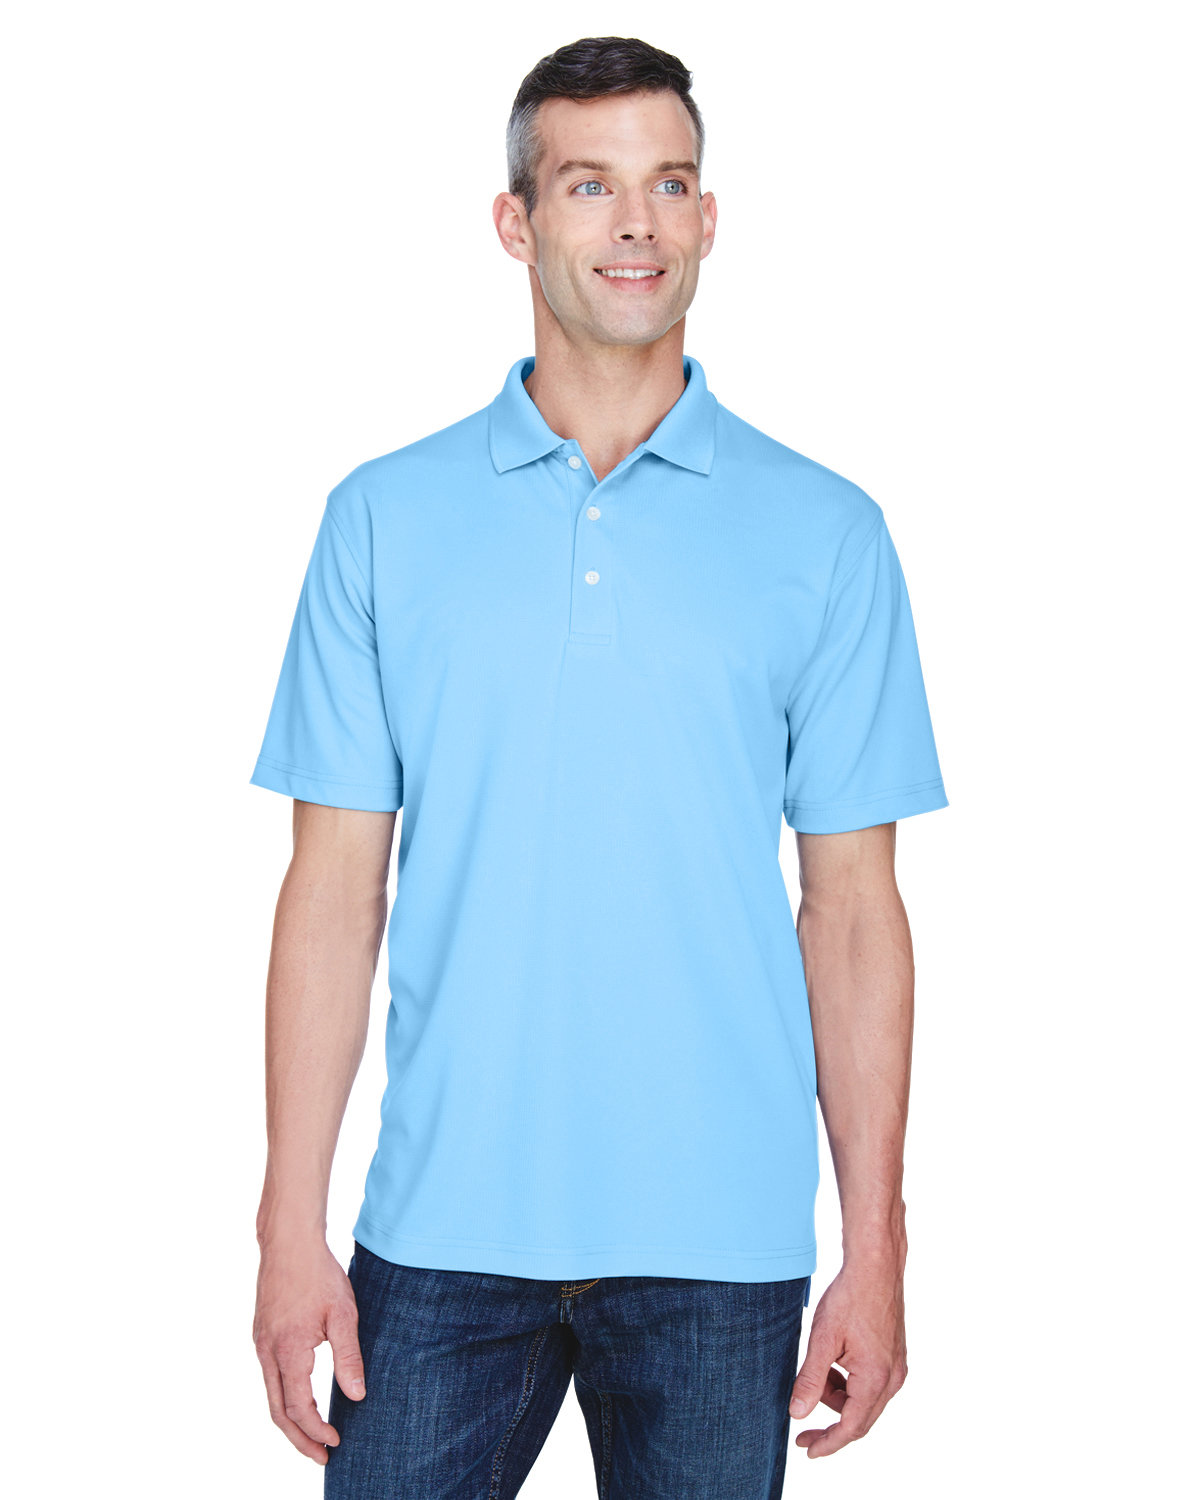 UltraClub Men's Cool & Dry Stain-Release Performance Polo COLUMBIA BLUE